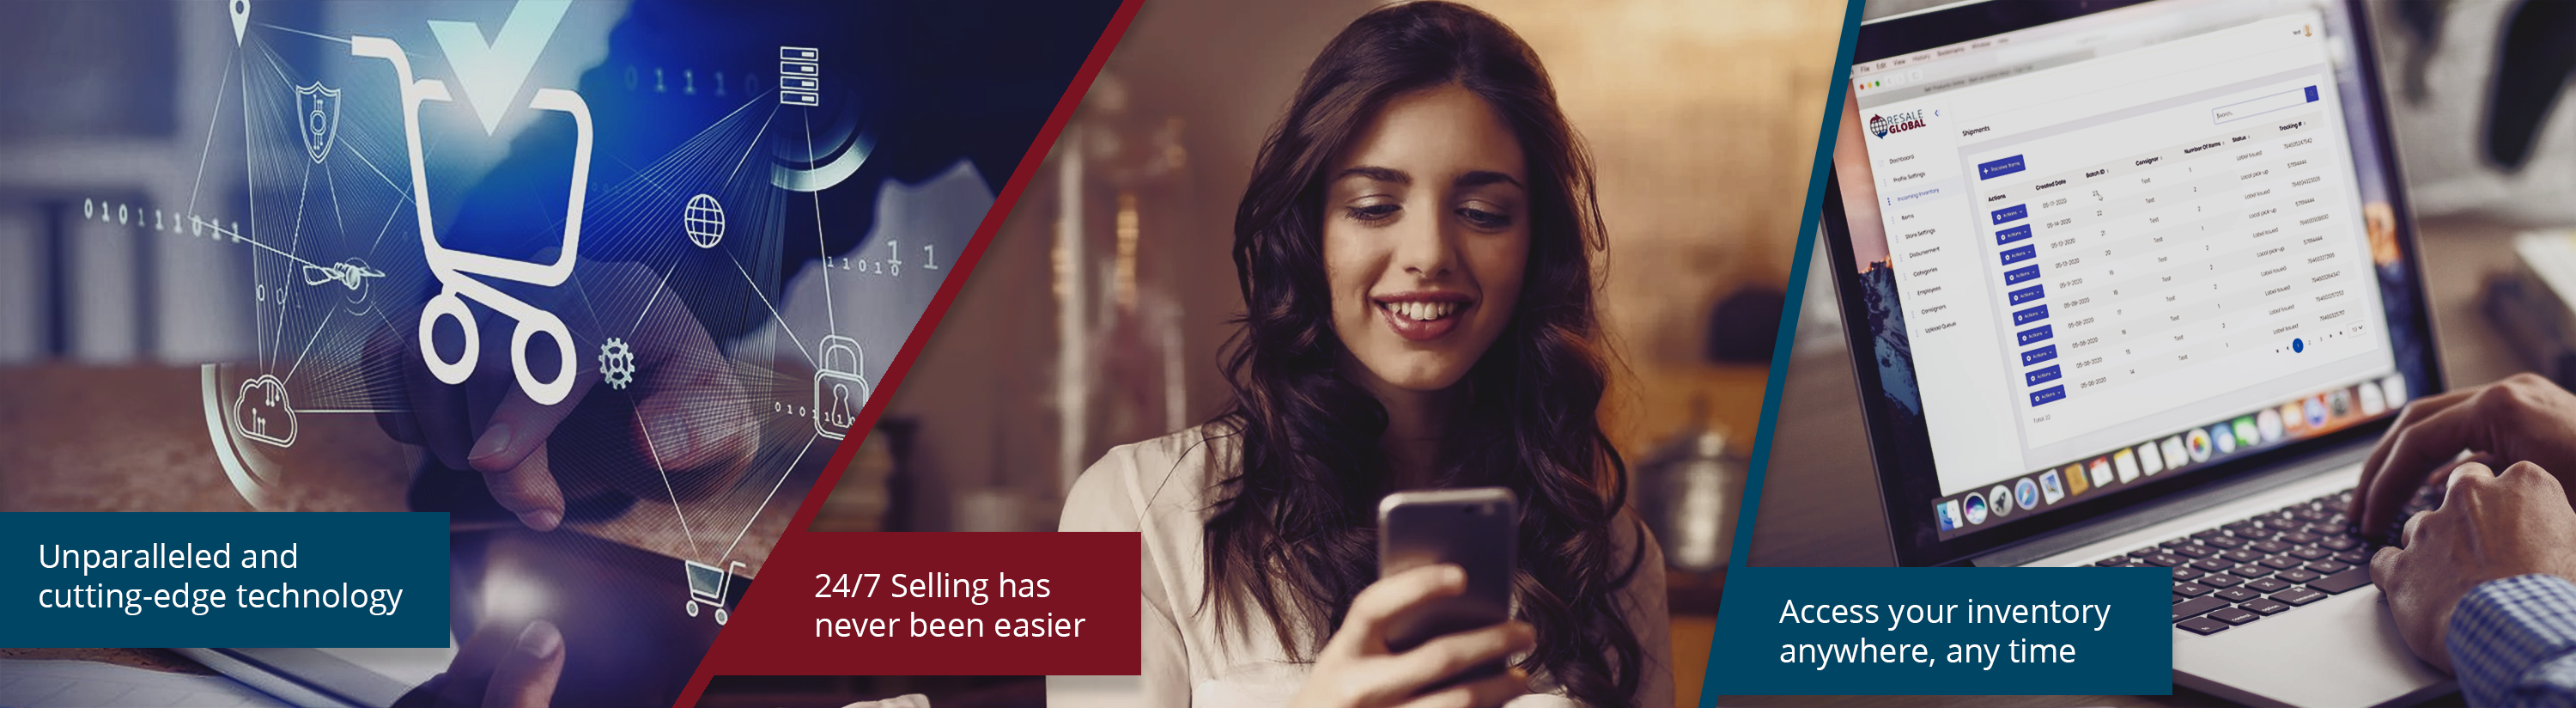 Unparalleled technology - 24/7 selling has never been easier - Access your inventory from anywhere